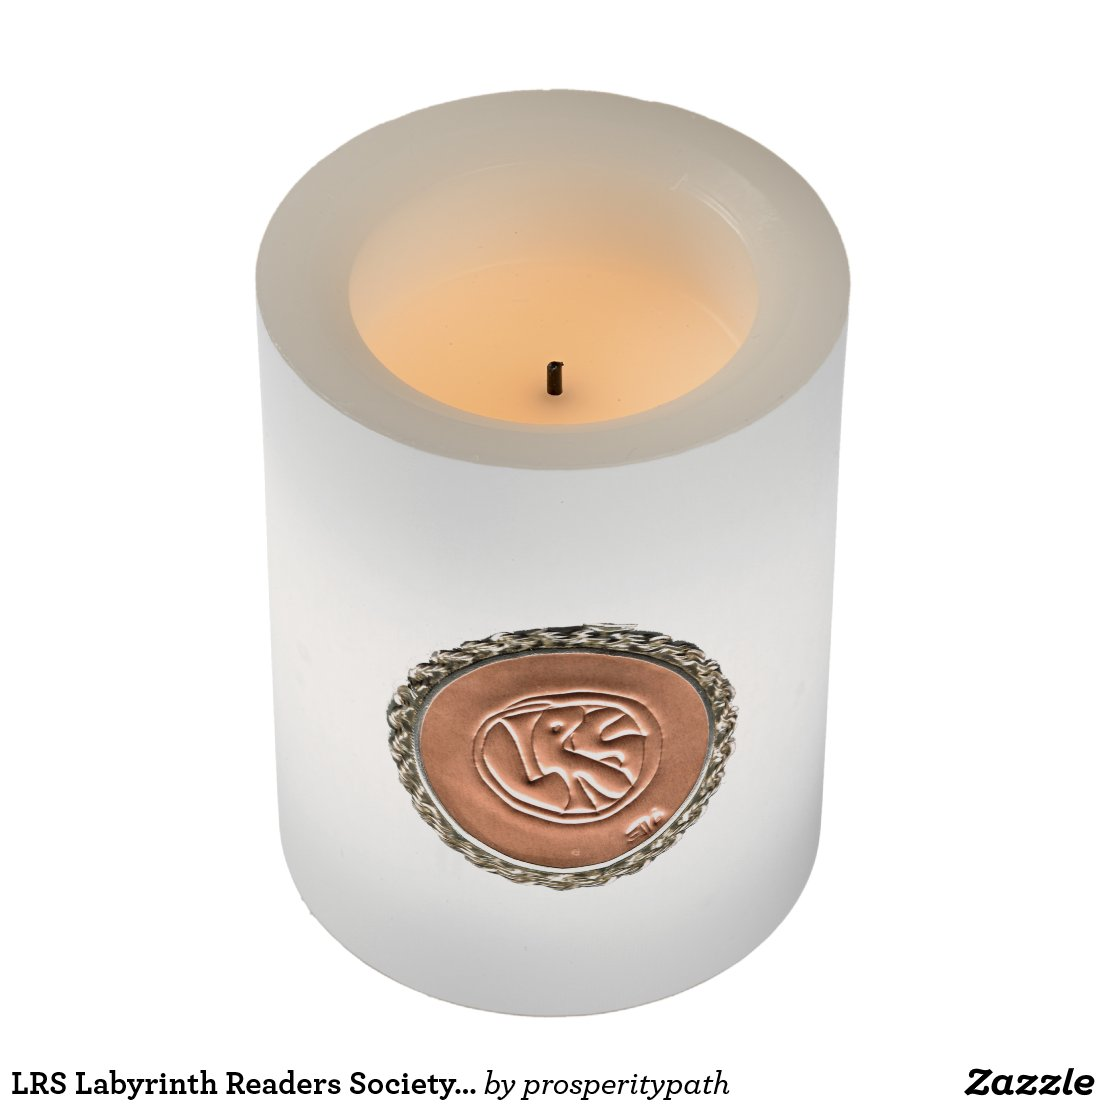 LRS Labyrinth Readers Society LED Votive Candle